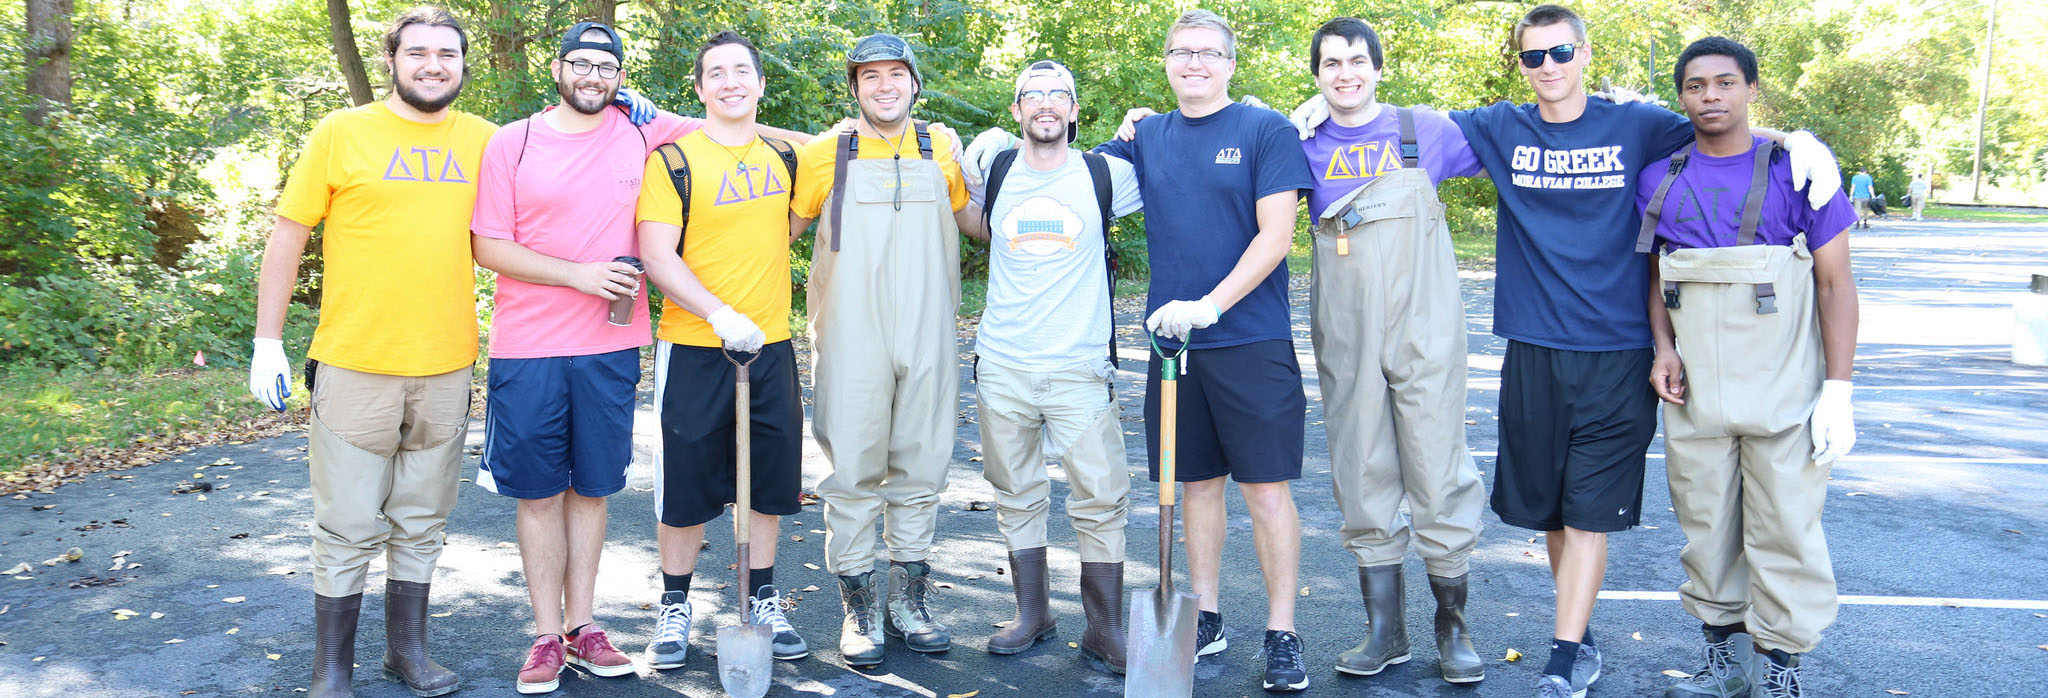 Delta Tau Delta members performing community service